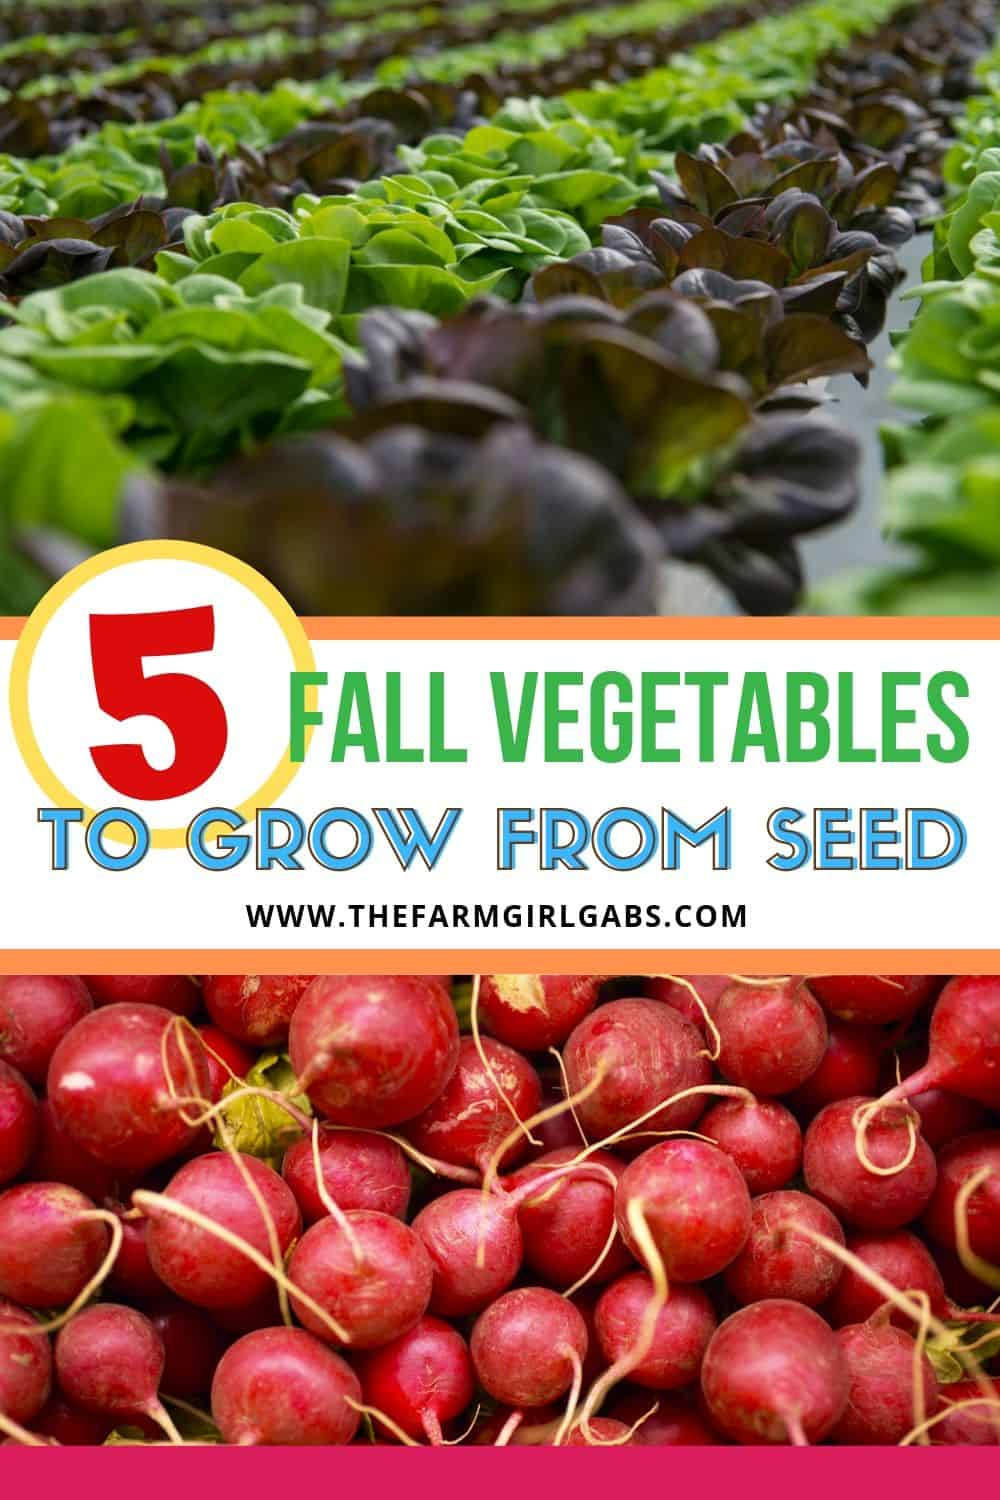 Fall is the perfect time to enjoy some vegetables from your garden. Here are five easy fall vegetables to grow from seed. #gardeningtips #fallgardening #gardenideas